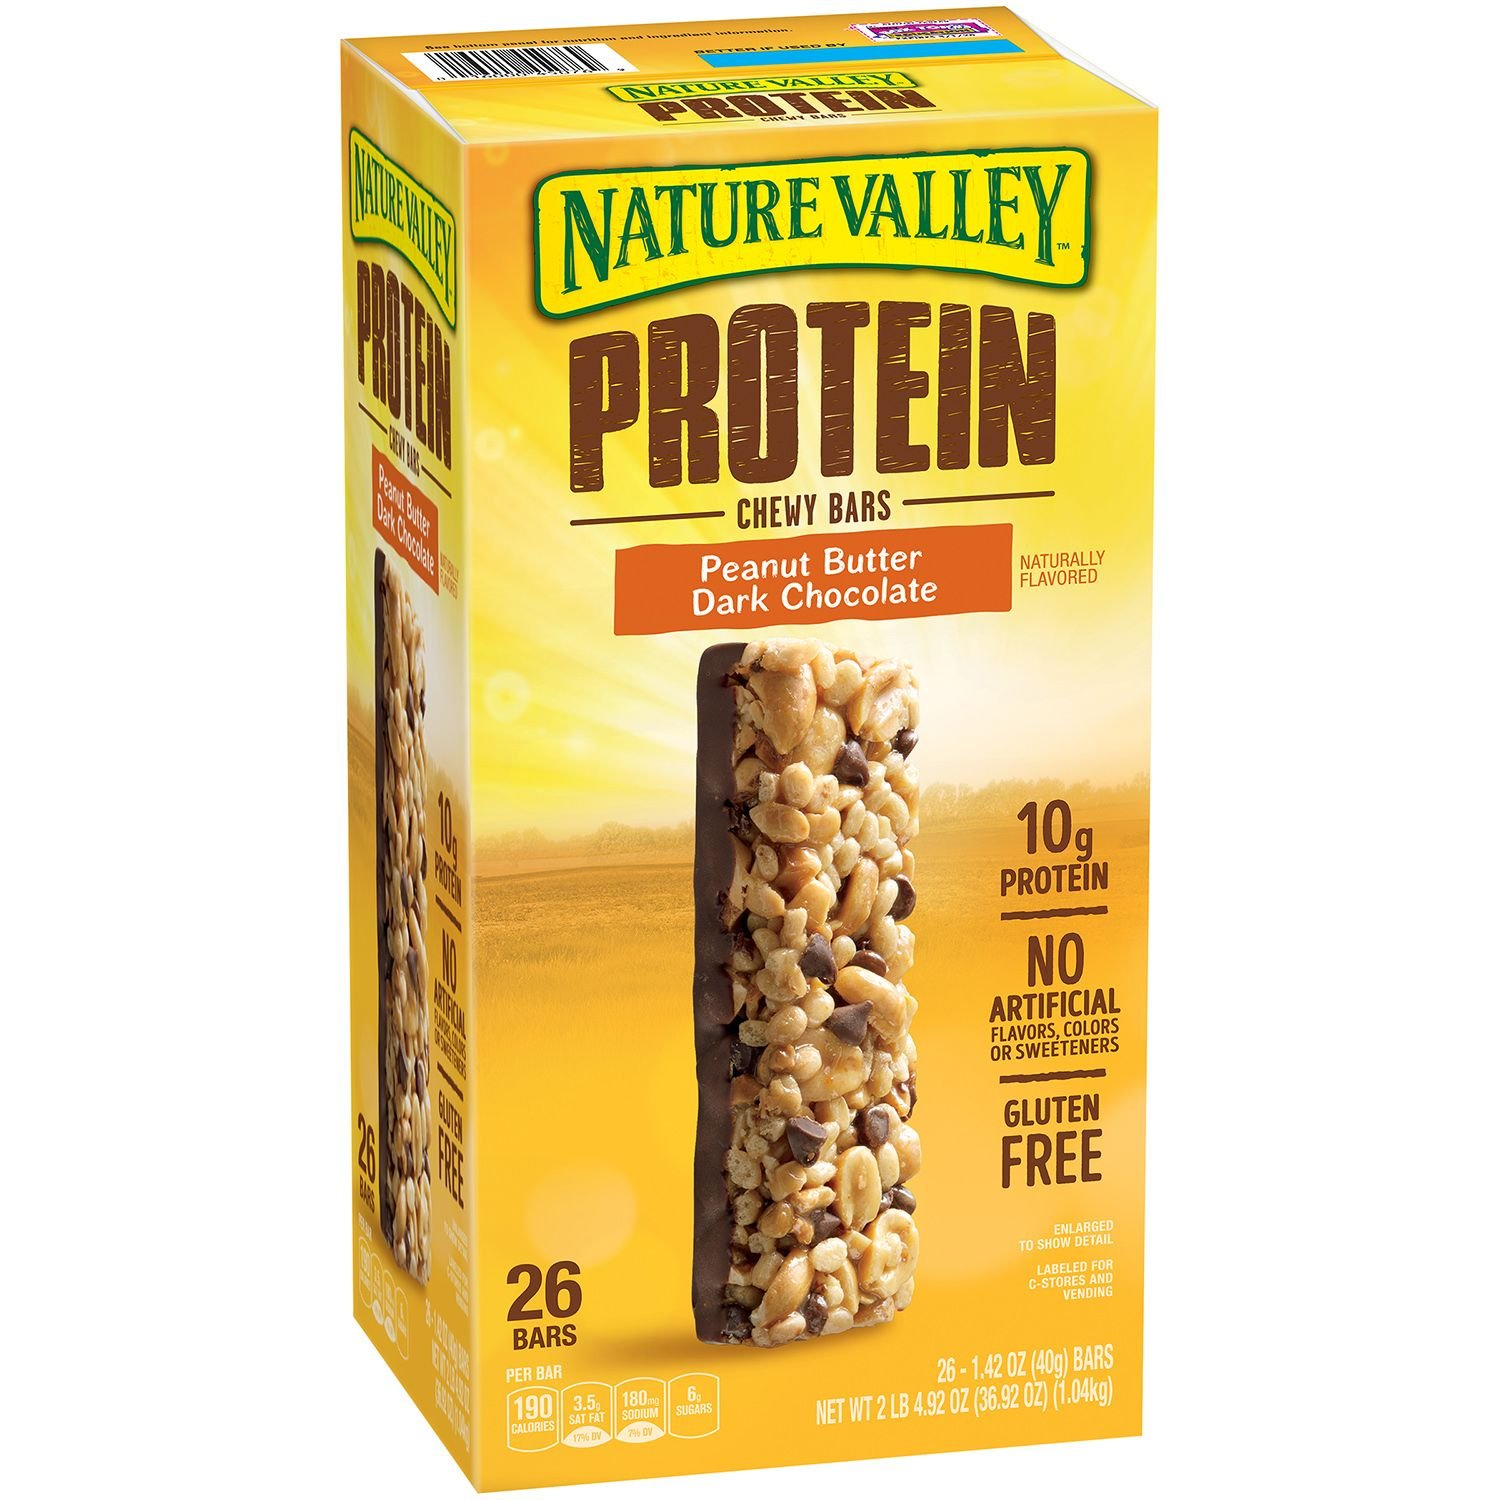 Nature Valley Protein Chewy Bar, Peanut Butter Dark Chocolate (Two 26 Ct Boxes, 1.42 Oz. Bars) Total 52 Bars